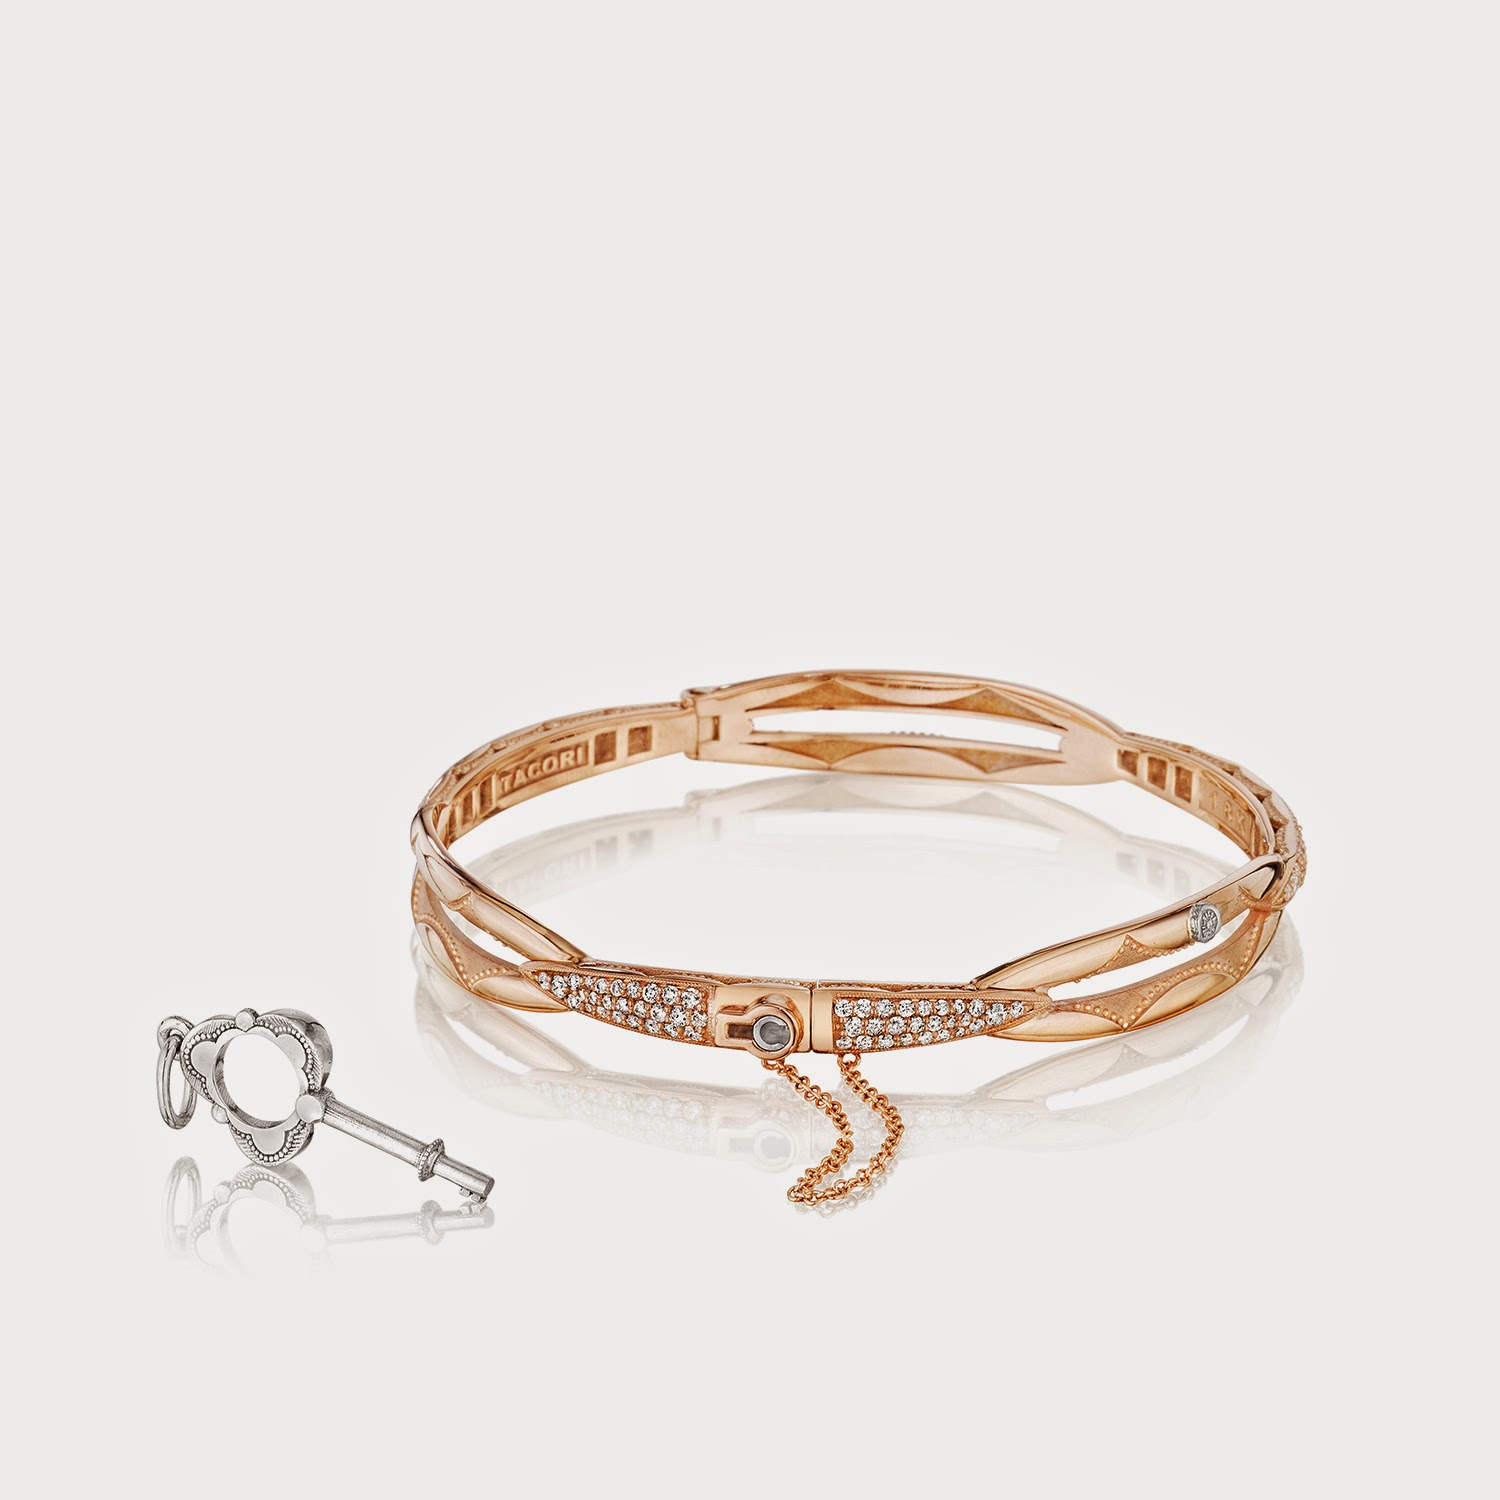 promise bracelet for arthur s jewelers a gift that she will never forget 7398